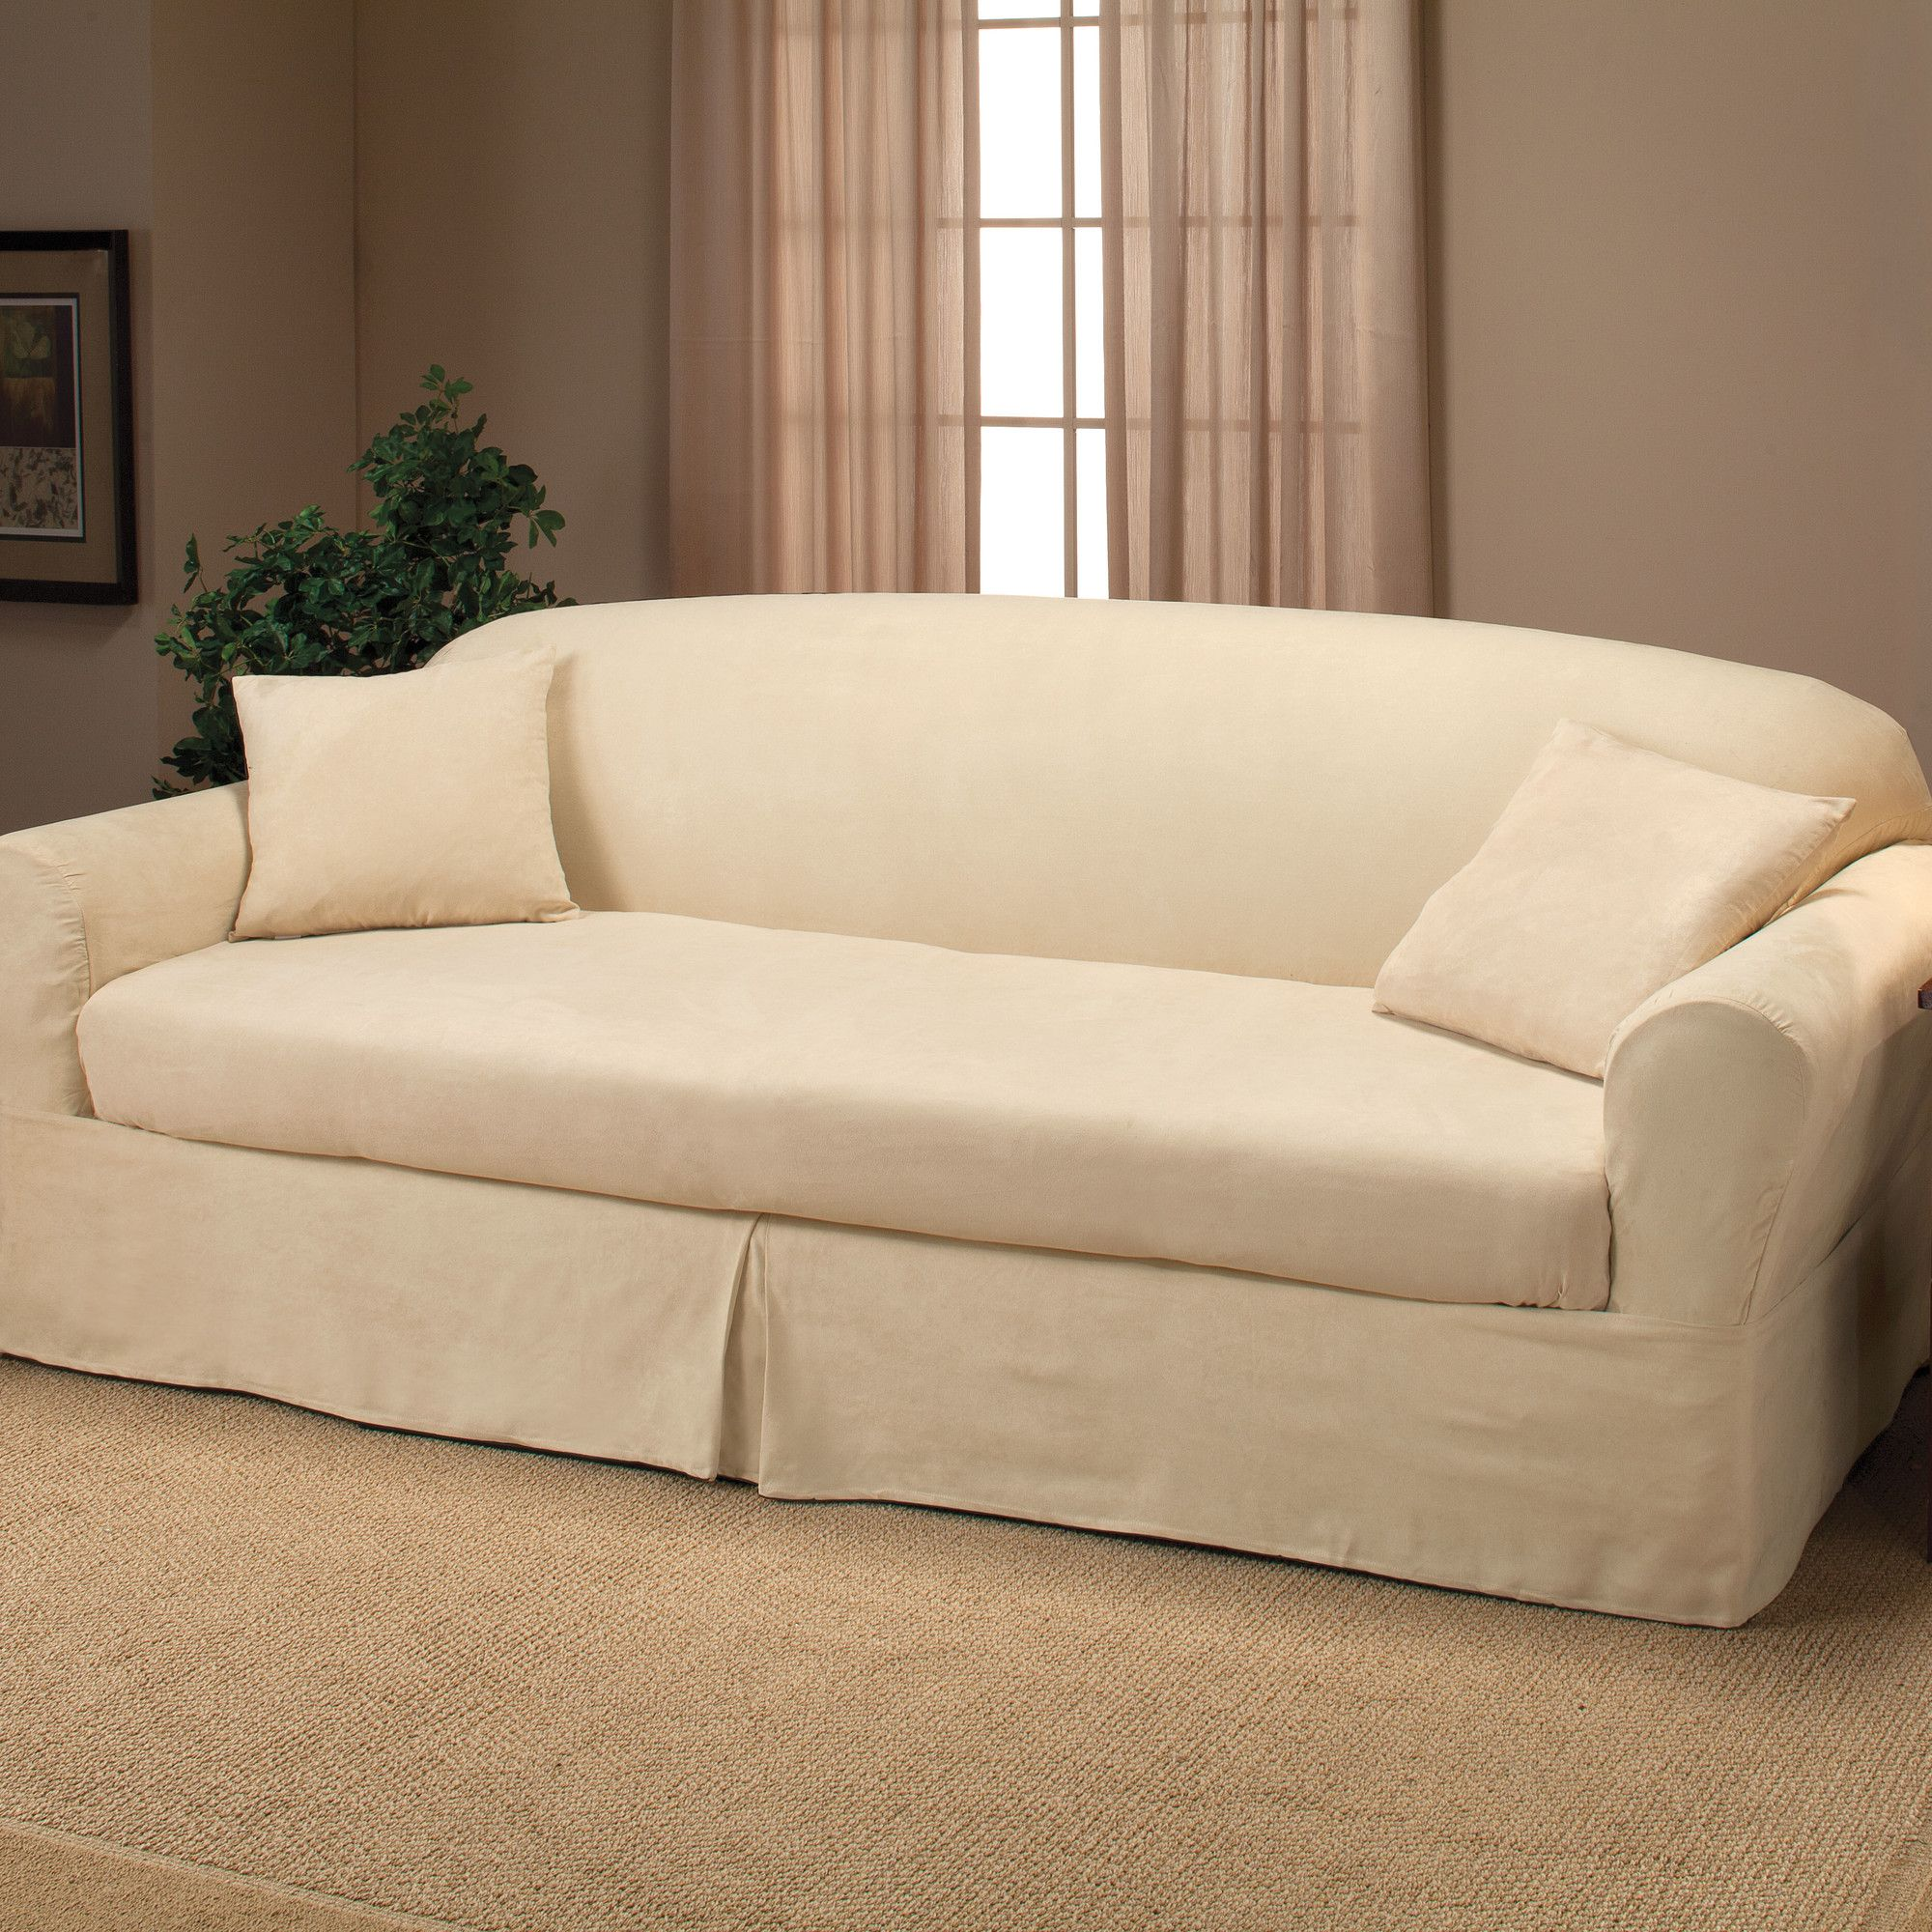 Microsuede 2 Piece Sofa Slipcover Sectional Sofa Slipcovers